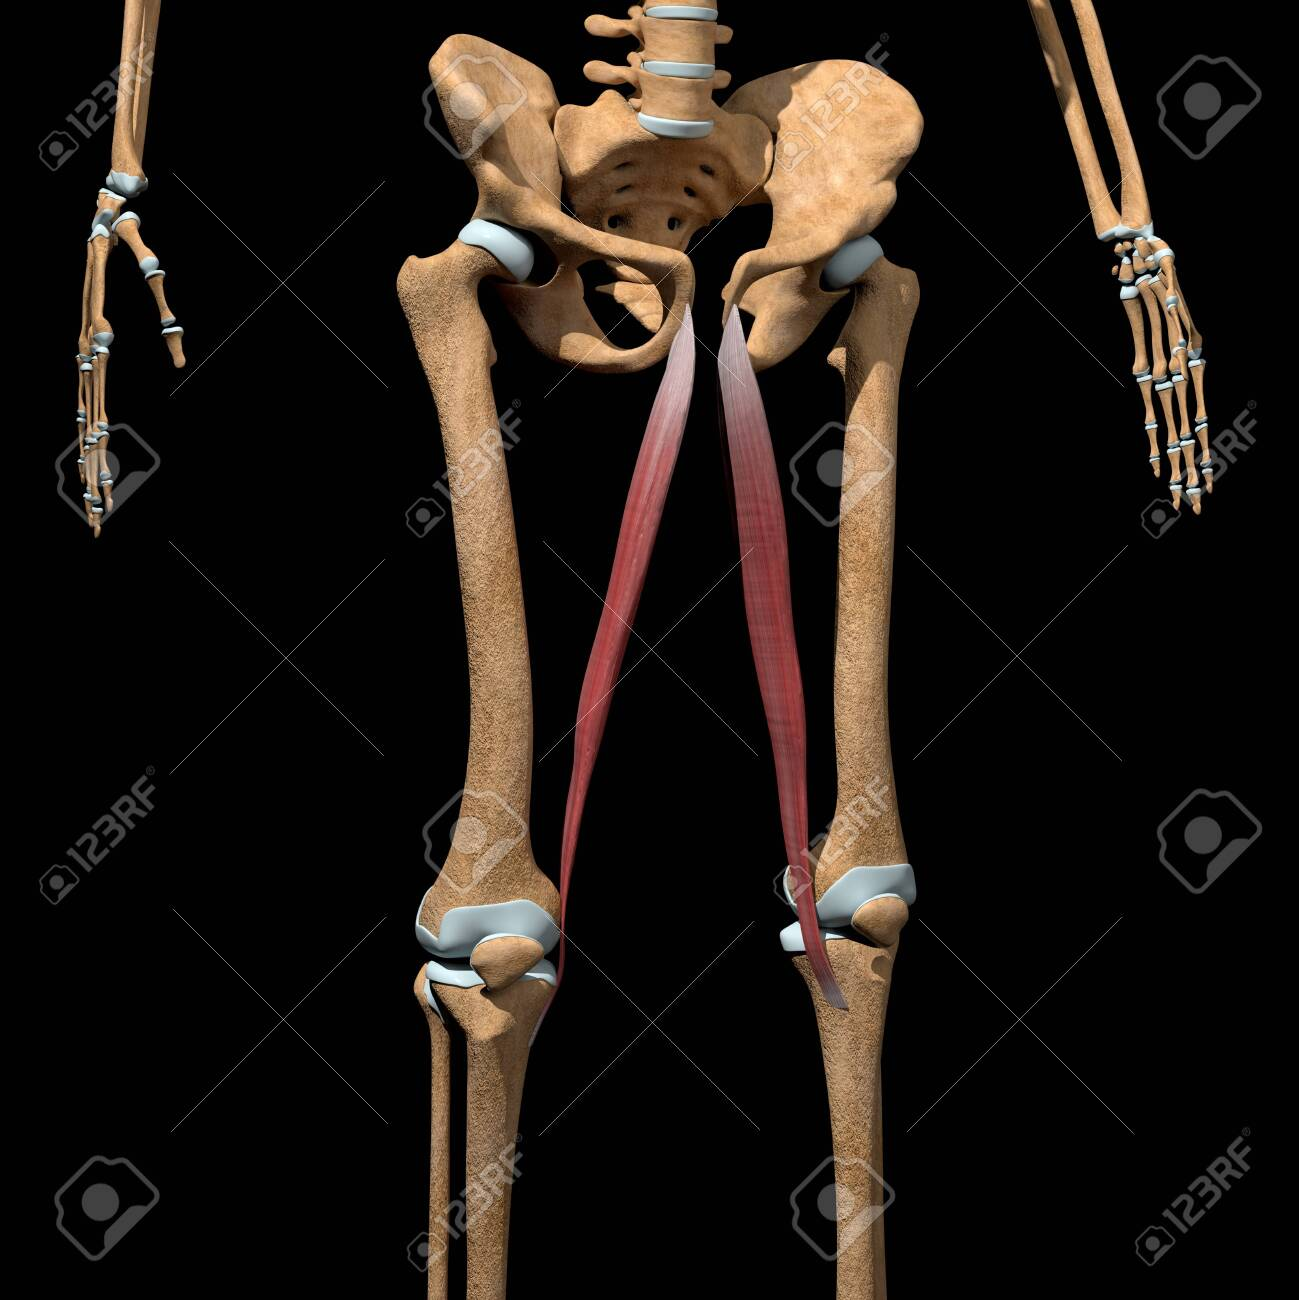 This 3d illustration shows the gracilis muscles on skeleton - 142171656